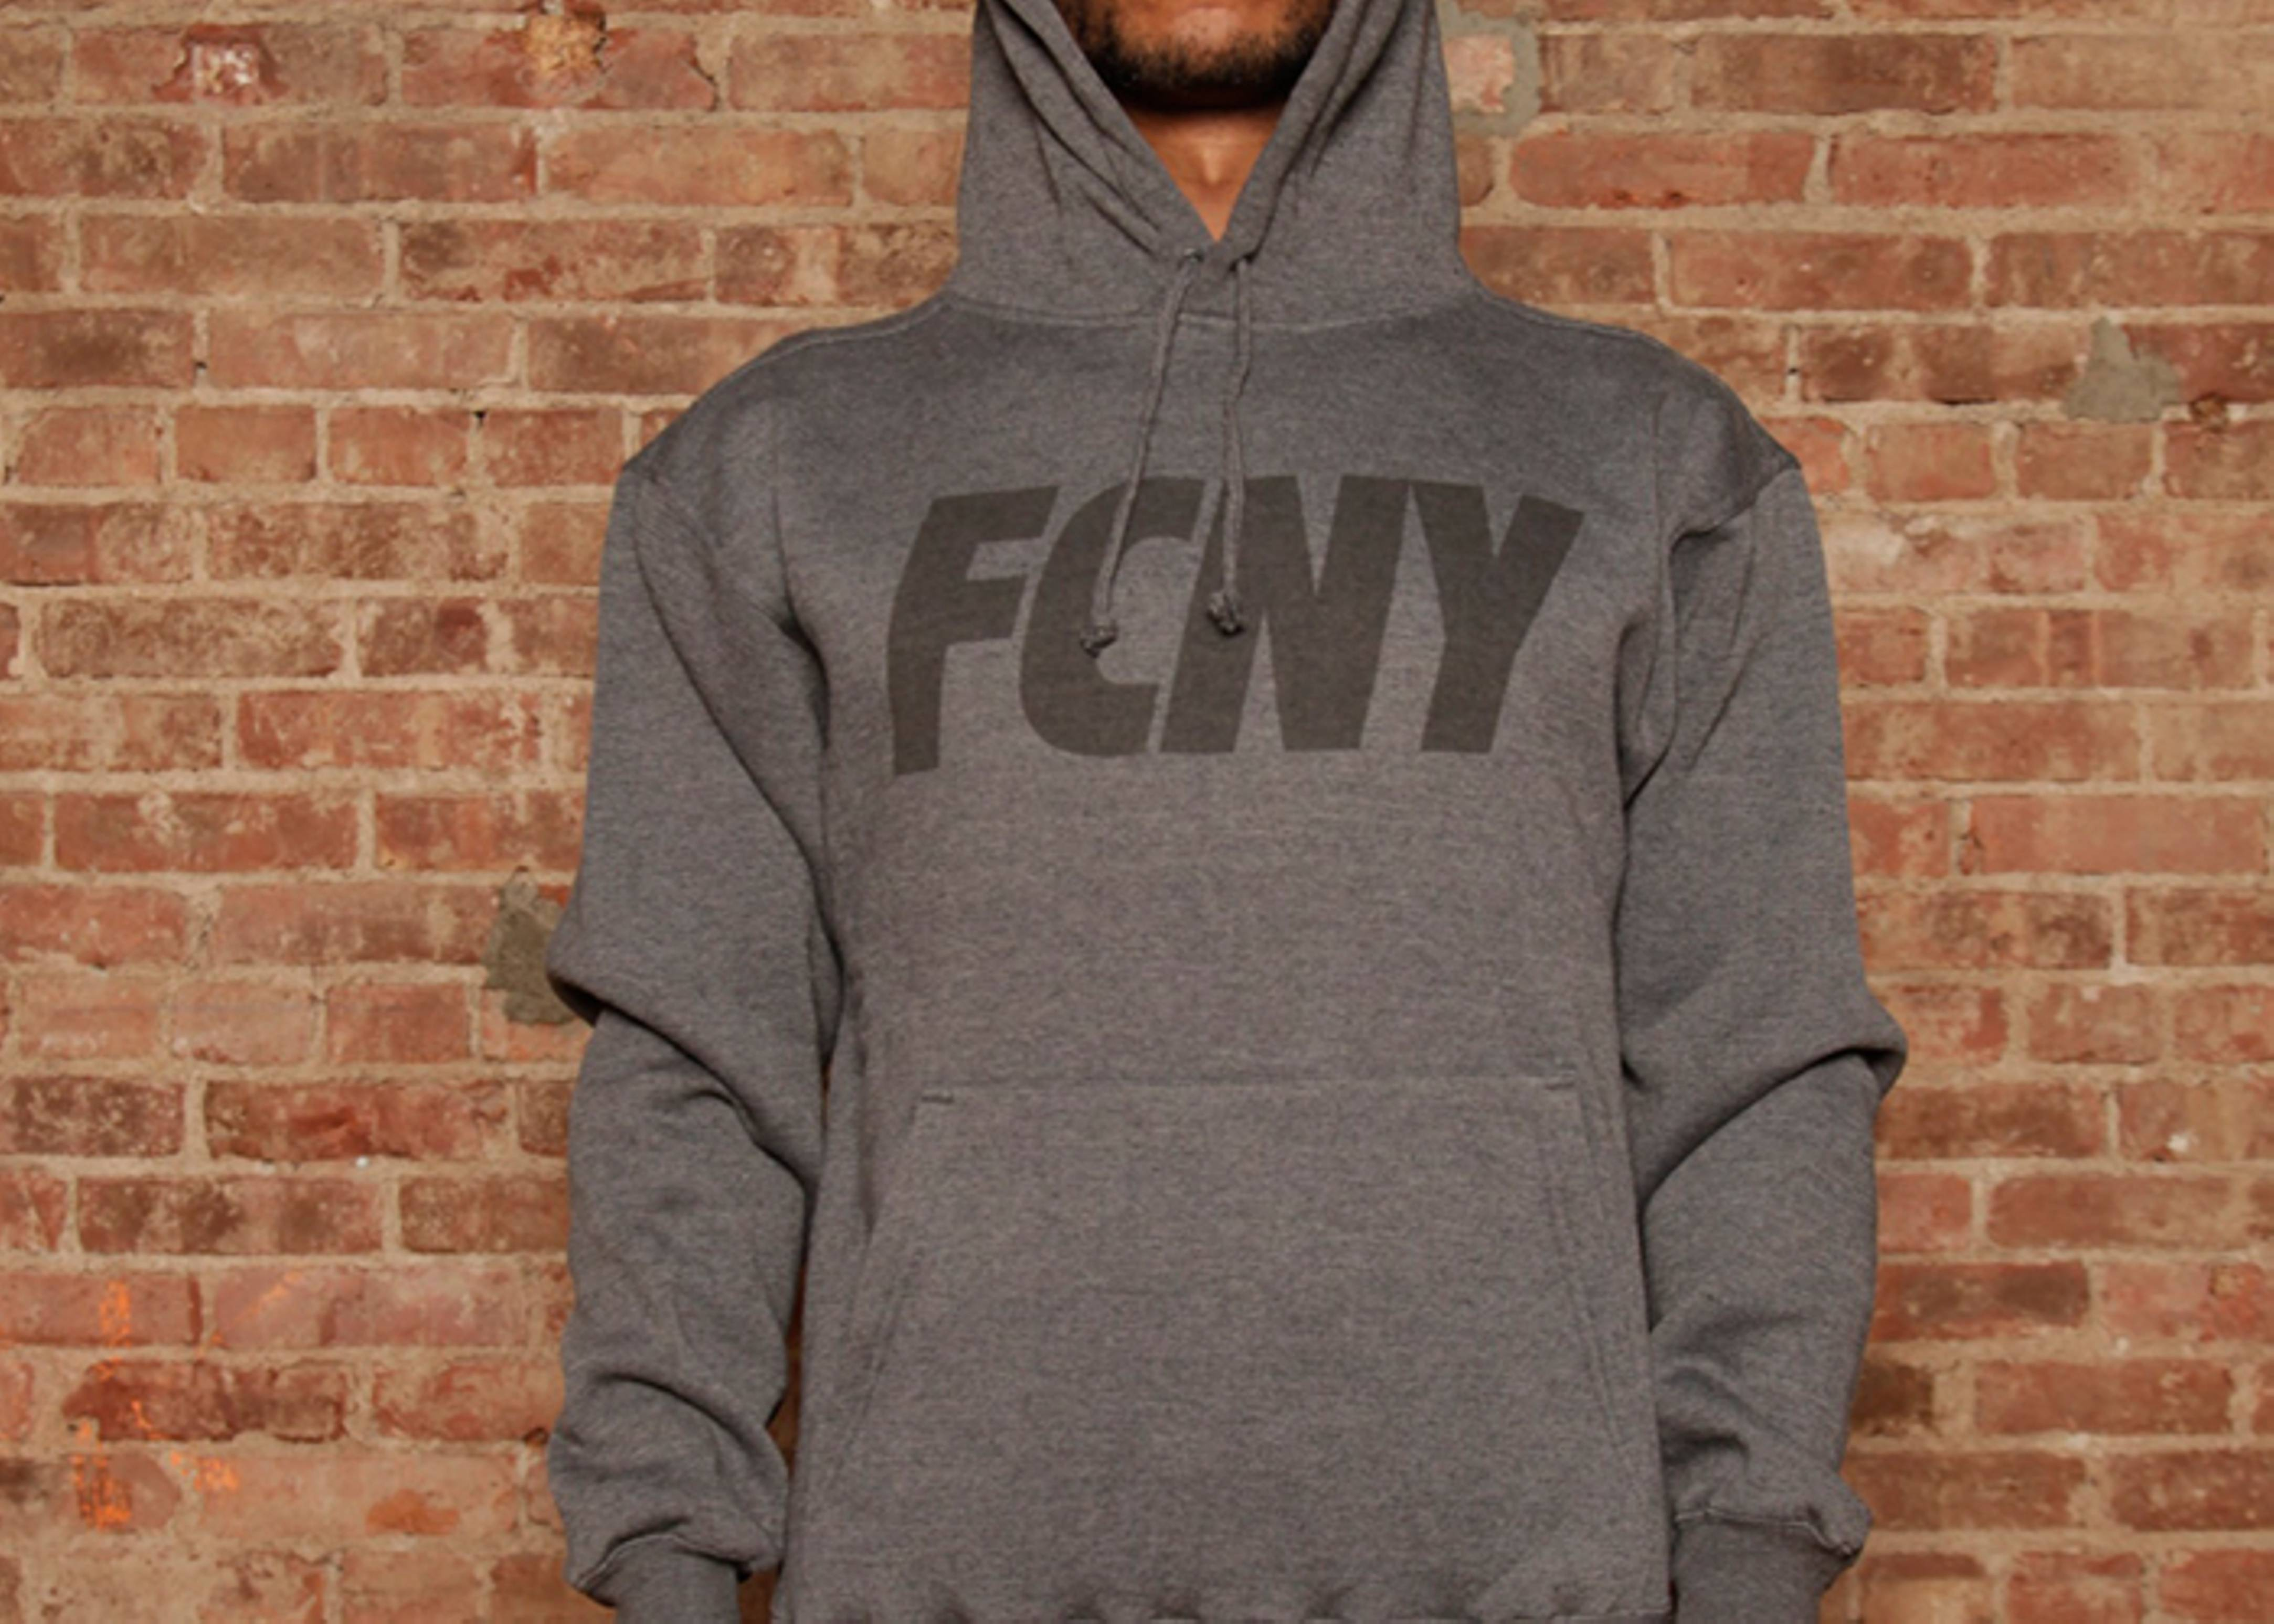 fcny pullover hoodie